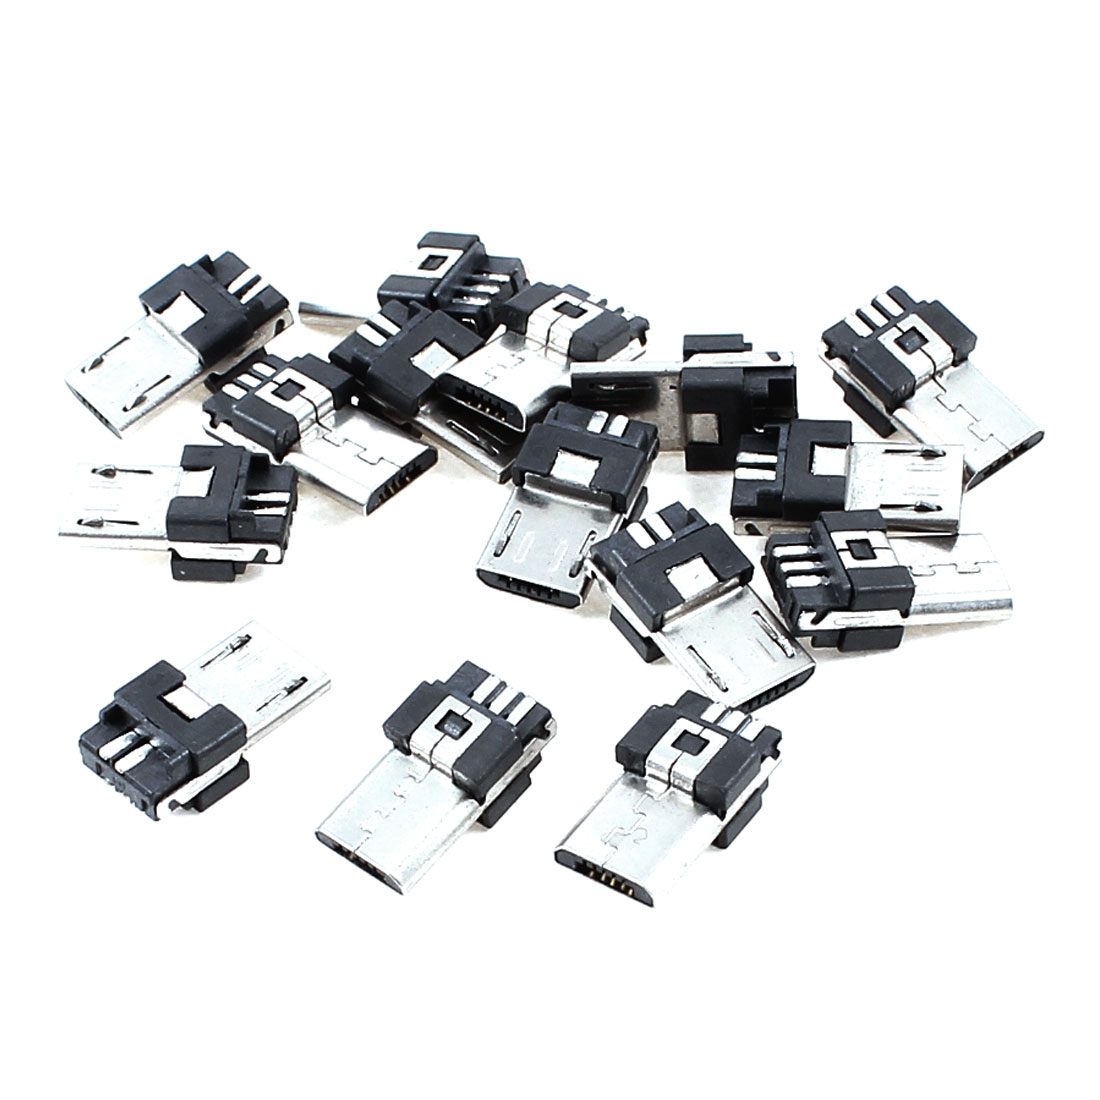 15pcs Micro USB 5 Pin Type B Male Jack Connector Solder Mount Plug Adapter